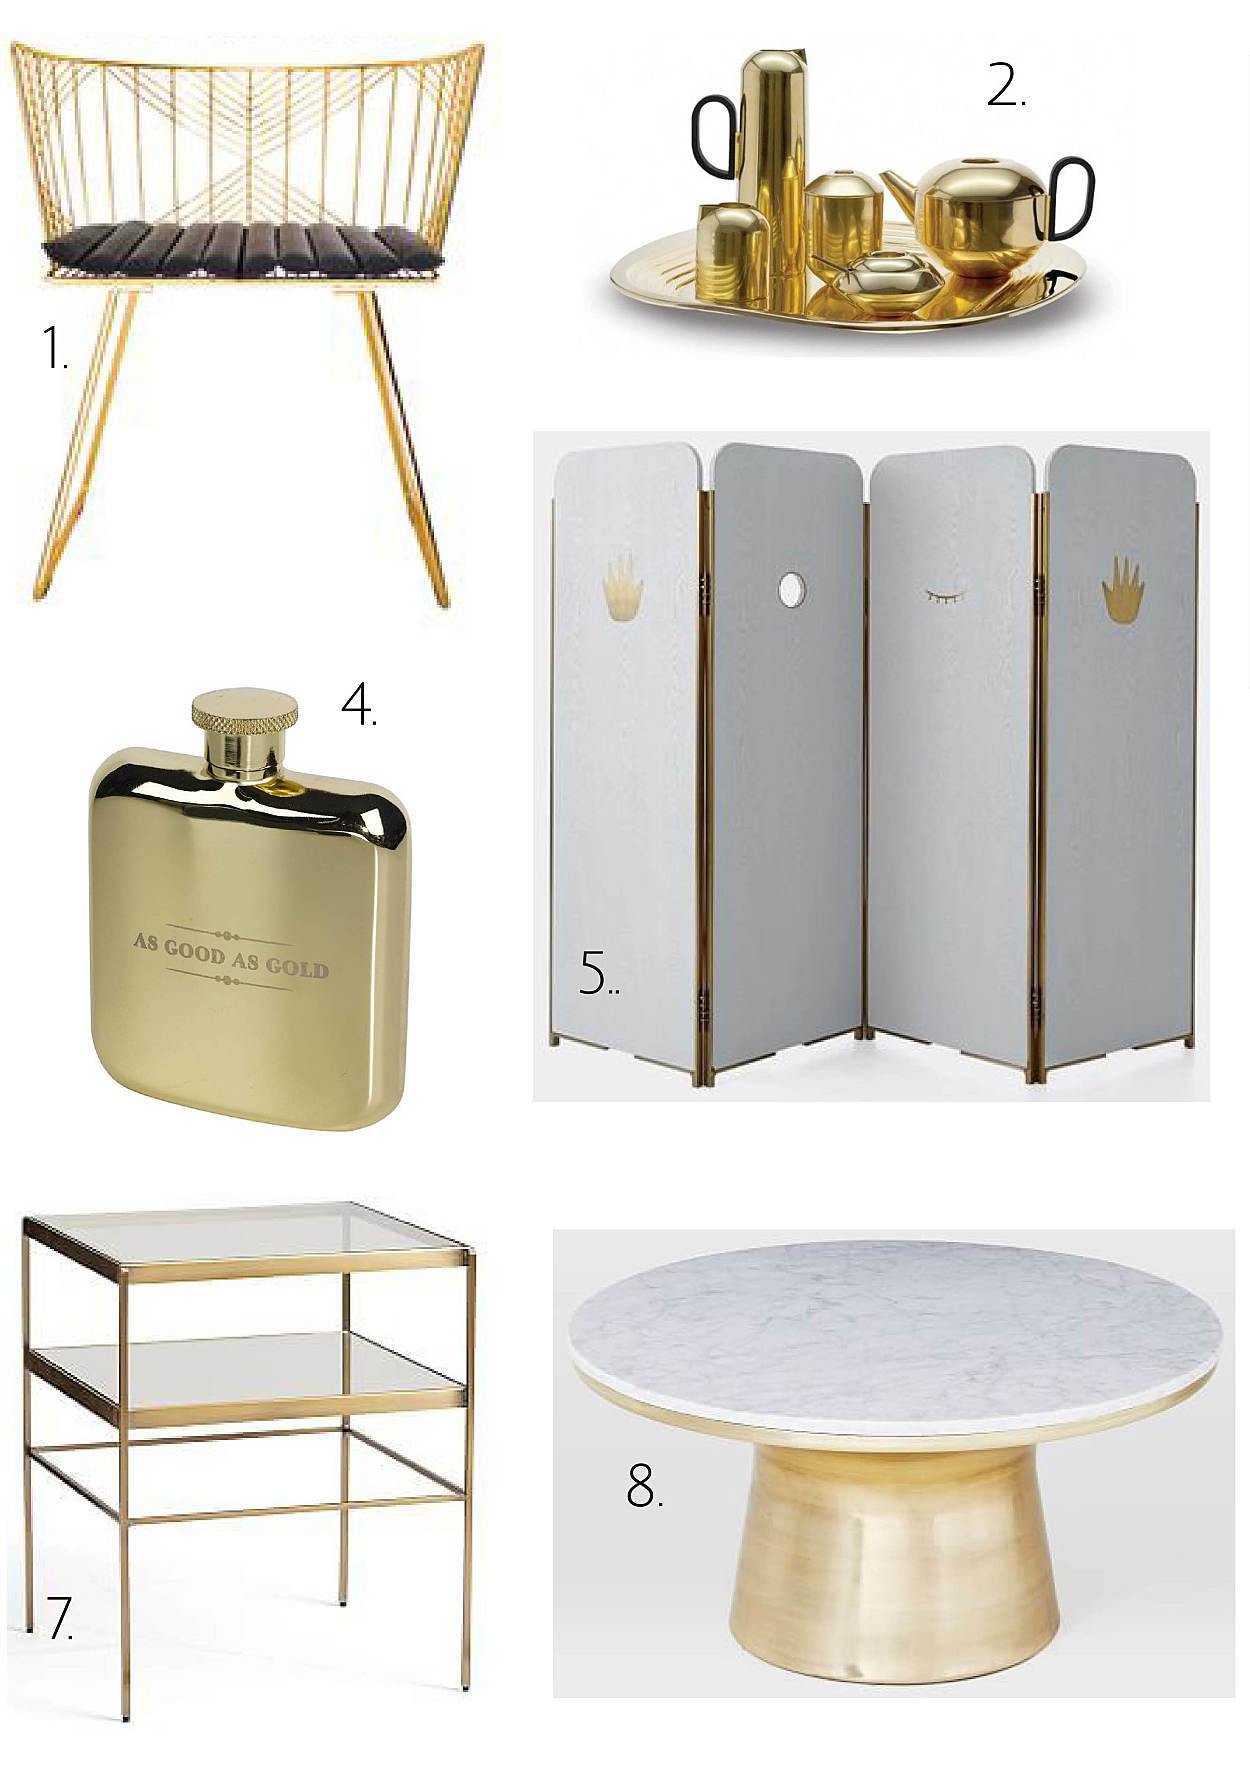 Home decorating ideas with bling turning the gold and brass trend into timeless decor martha - Timeless decor ideas not go style ...